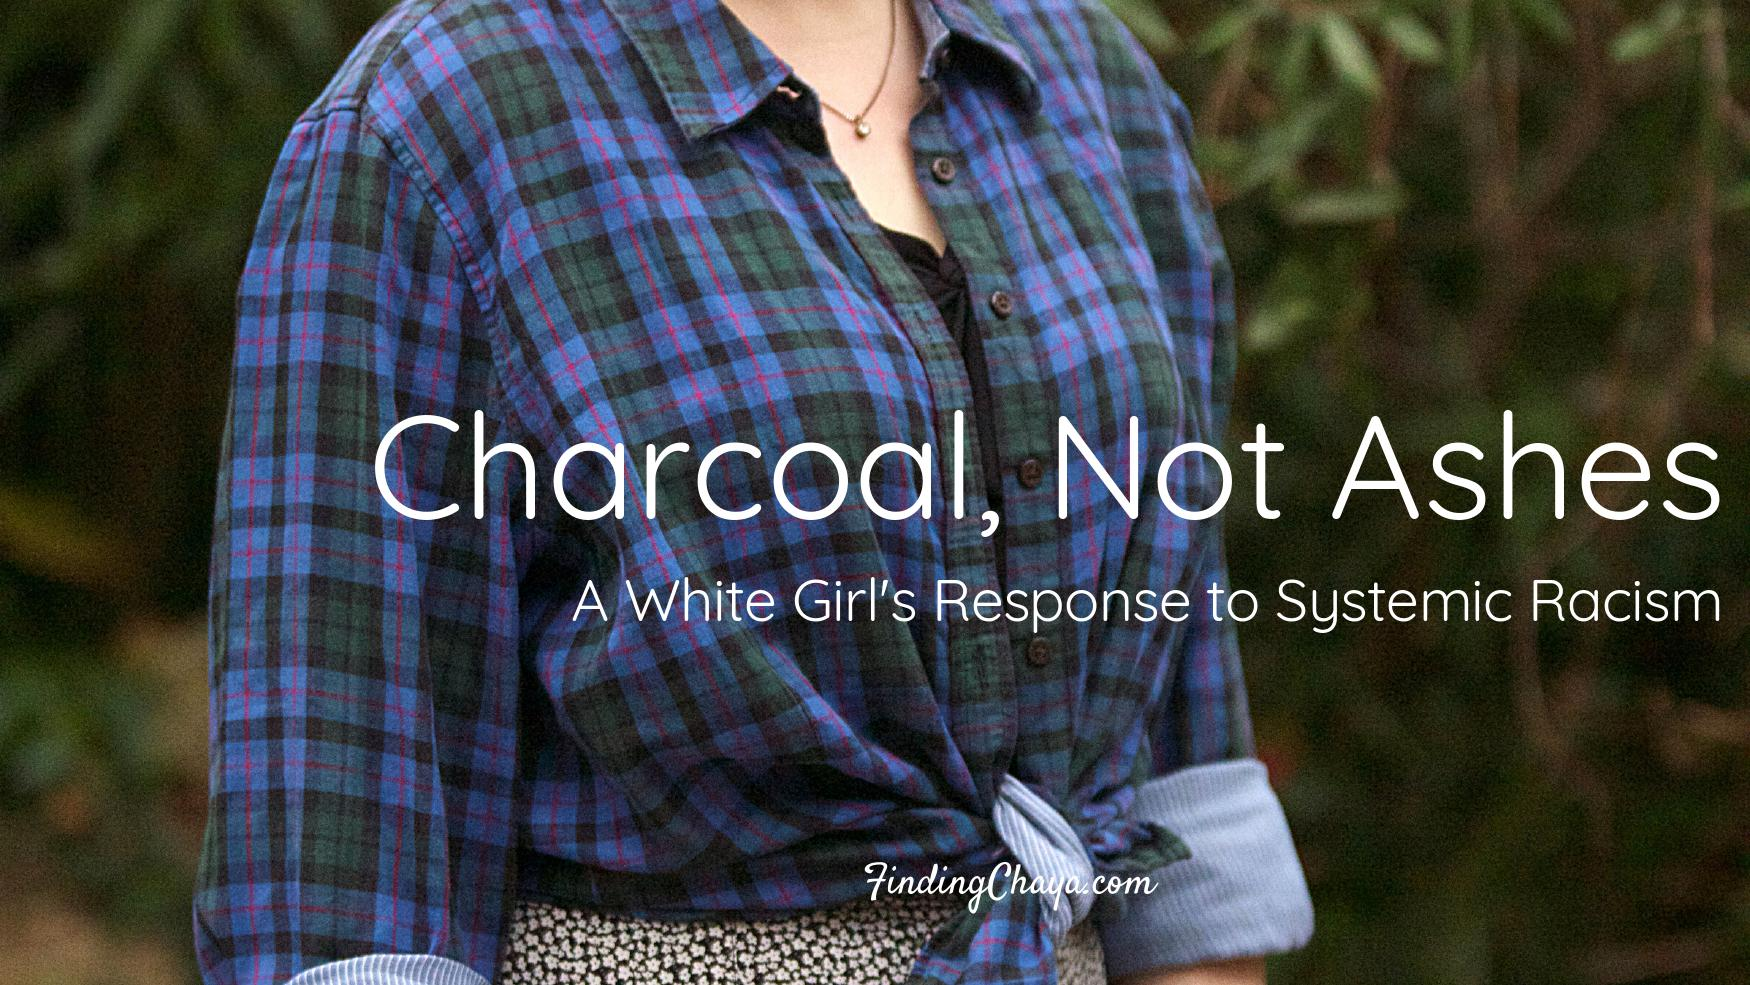 Charcoal, Not Ashes: A White Girl's Response to Systemic Racism